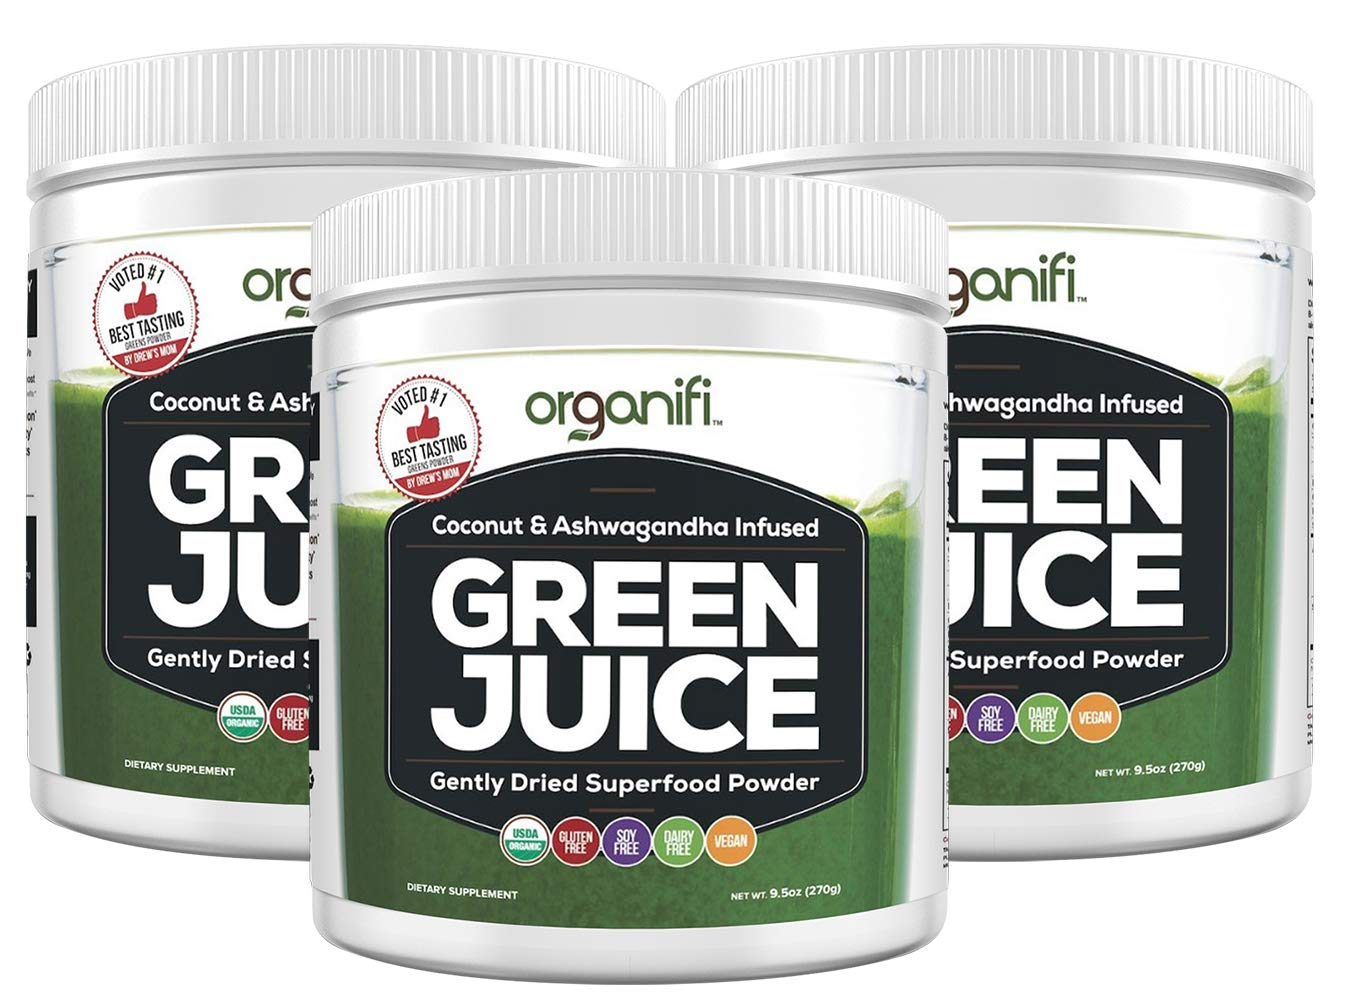 Organifi: Green Juice - Organic Superfood Supplement Powder - 30 Day Supply - USDA Certified Organic Vegan Greens- Hydrates and Revitalizes - Boost Immune System - Support Relaxation and Sleep - 3PK